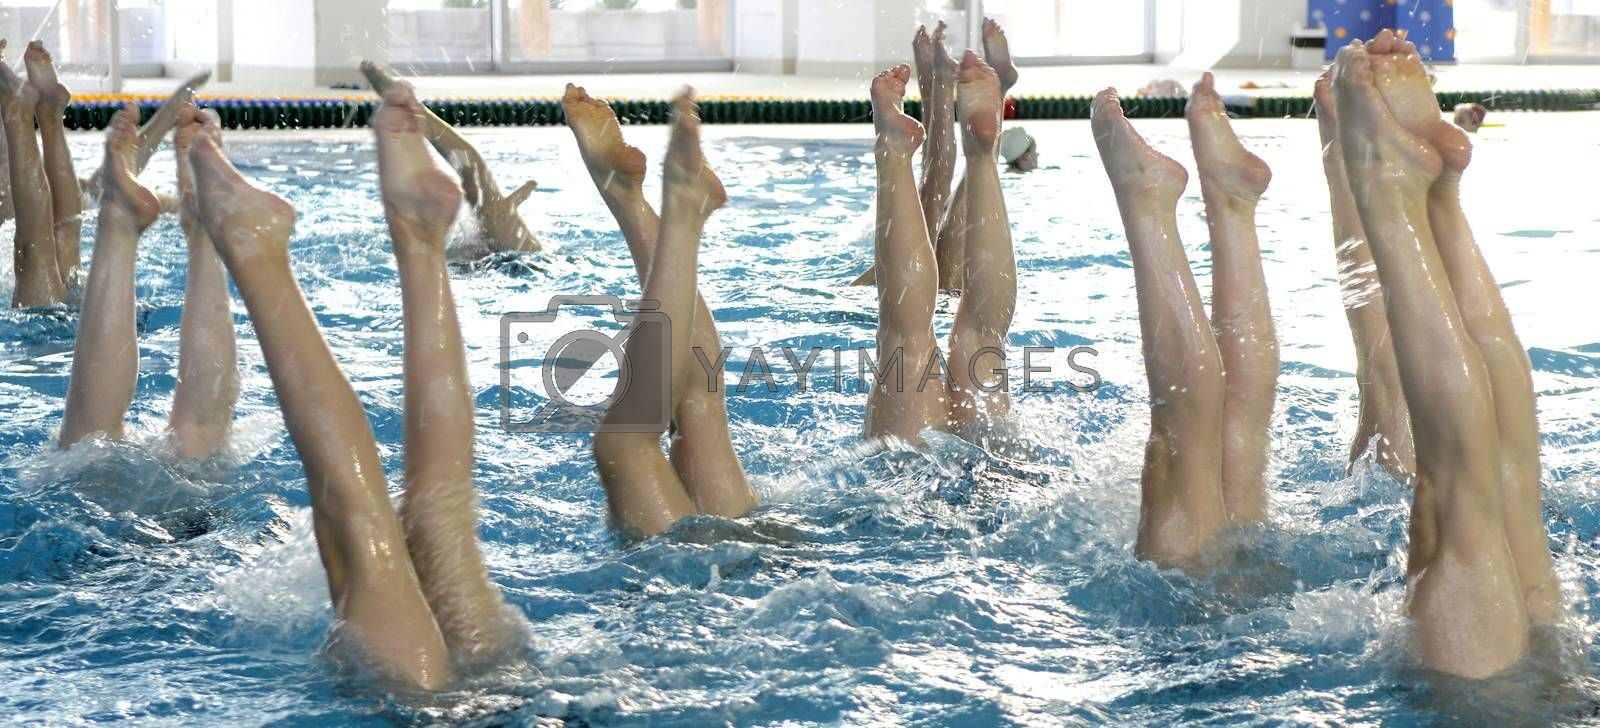 Synchronized swimming detail by Peric